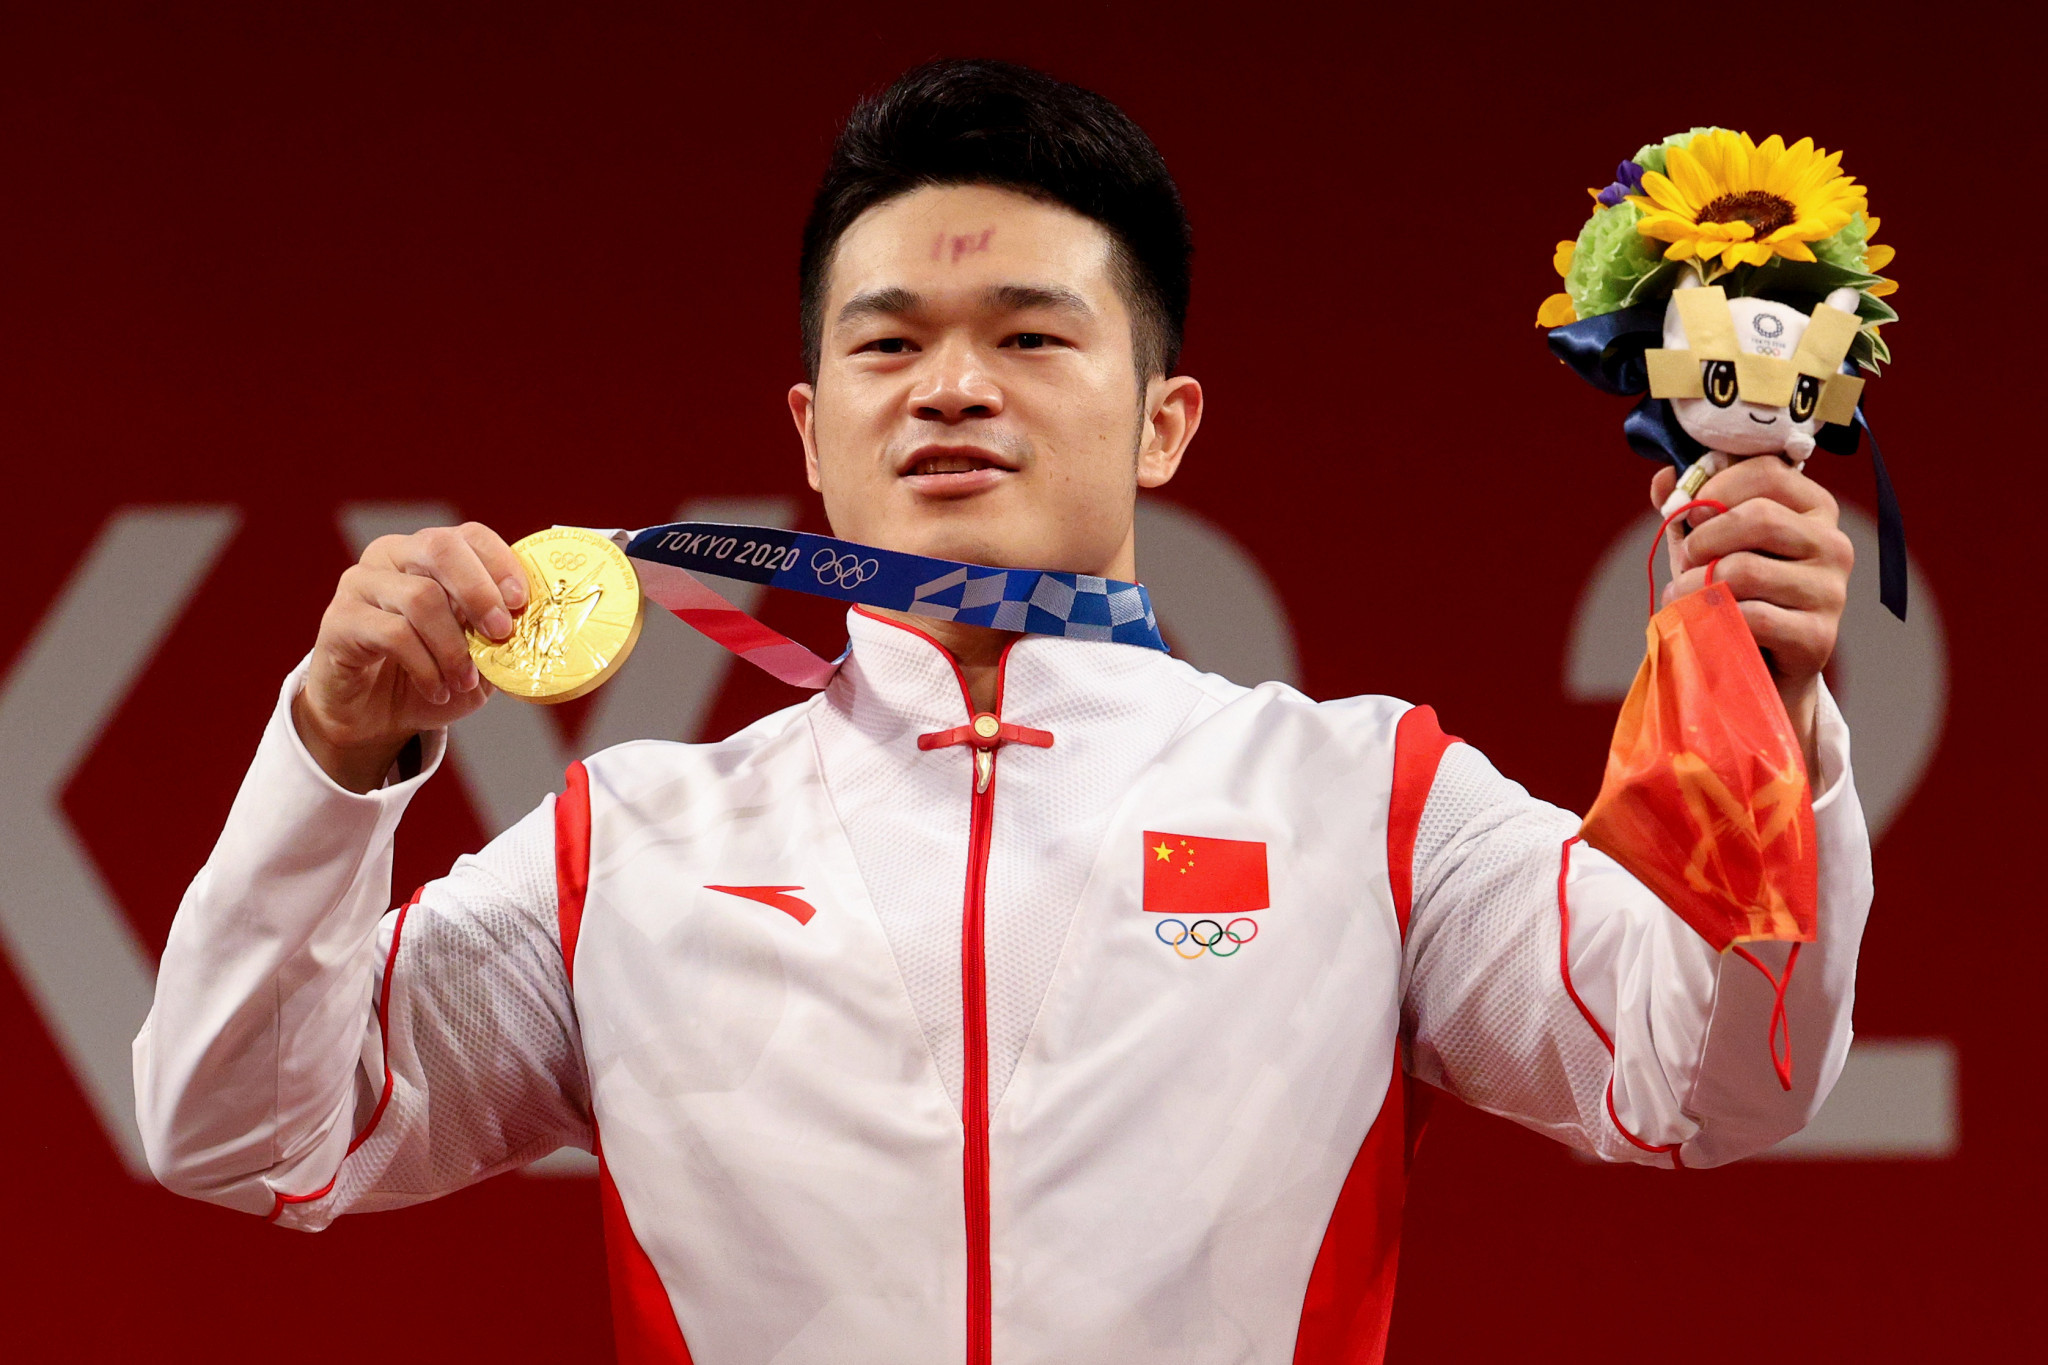 Shi Zhiyong won the gold medal in the 73 kilogram category at Tokyo 2020 ©Getty Images